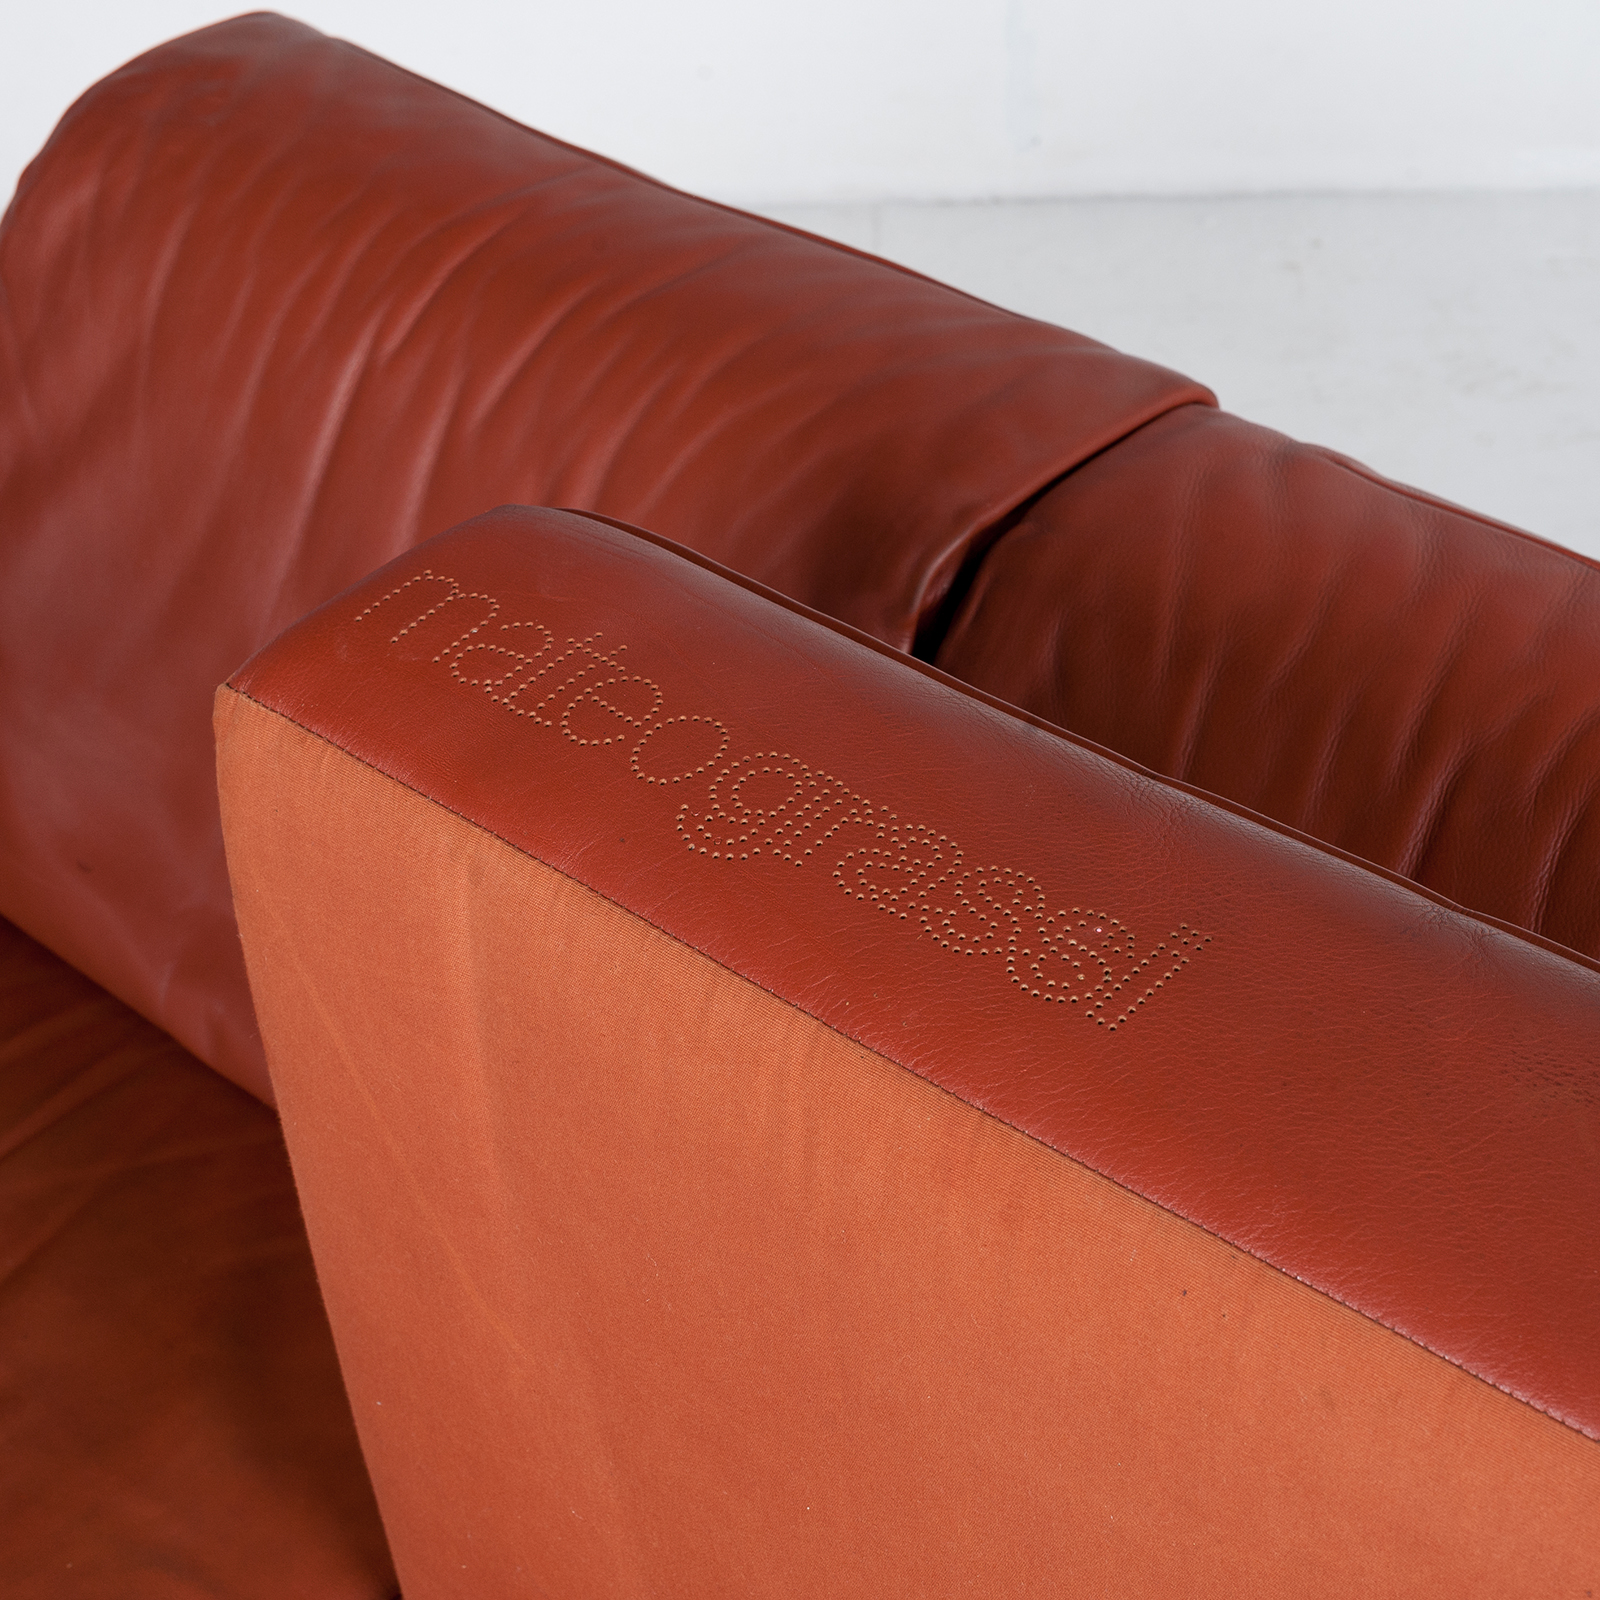 3 Seat Sofa In Leather By Matteo Grassi, 1980s, Italy56